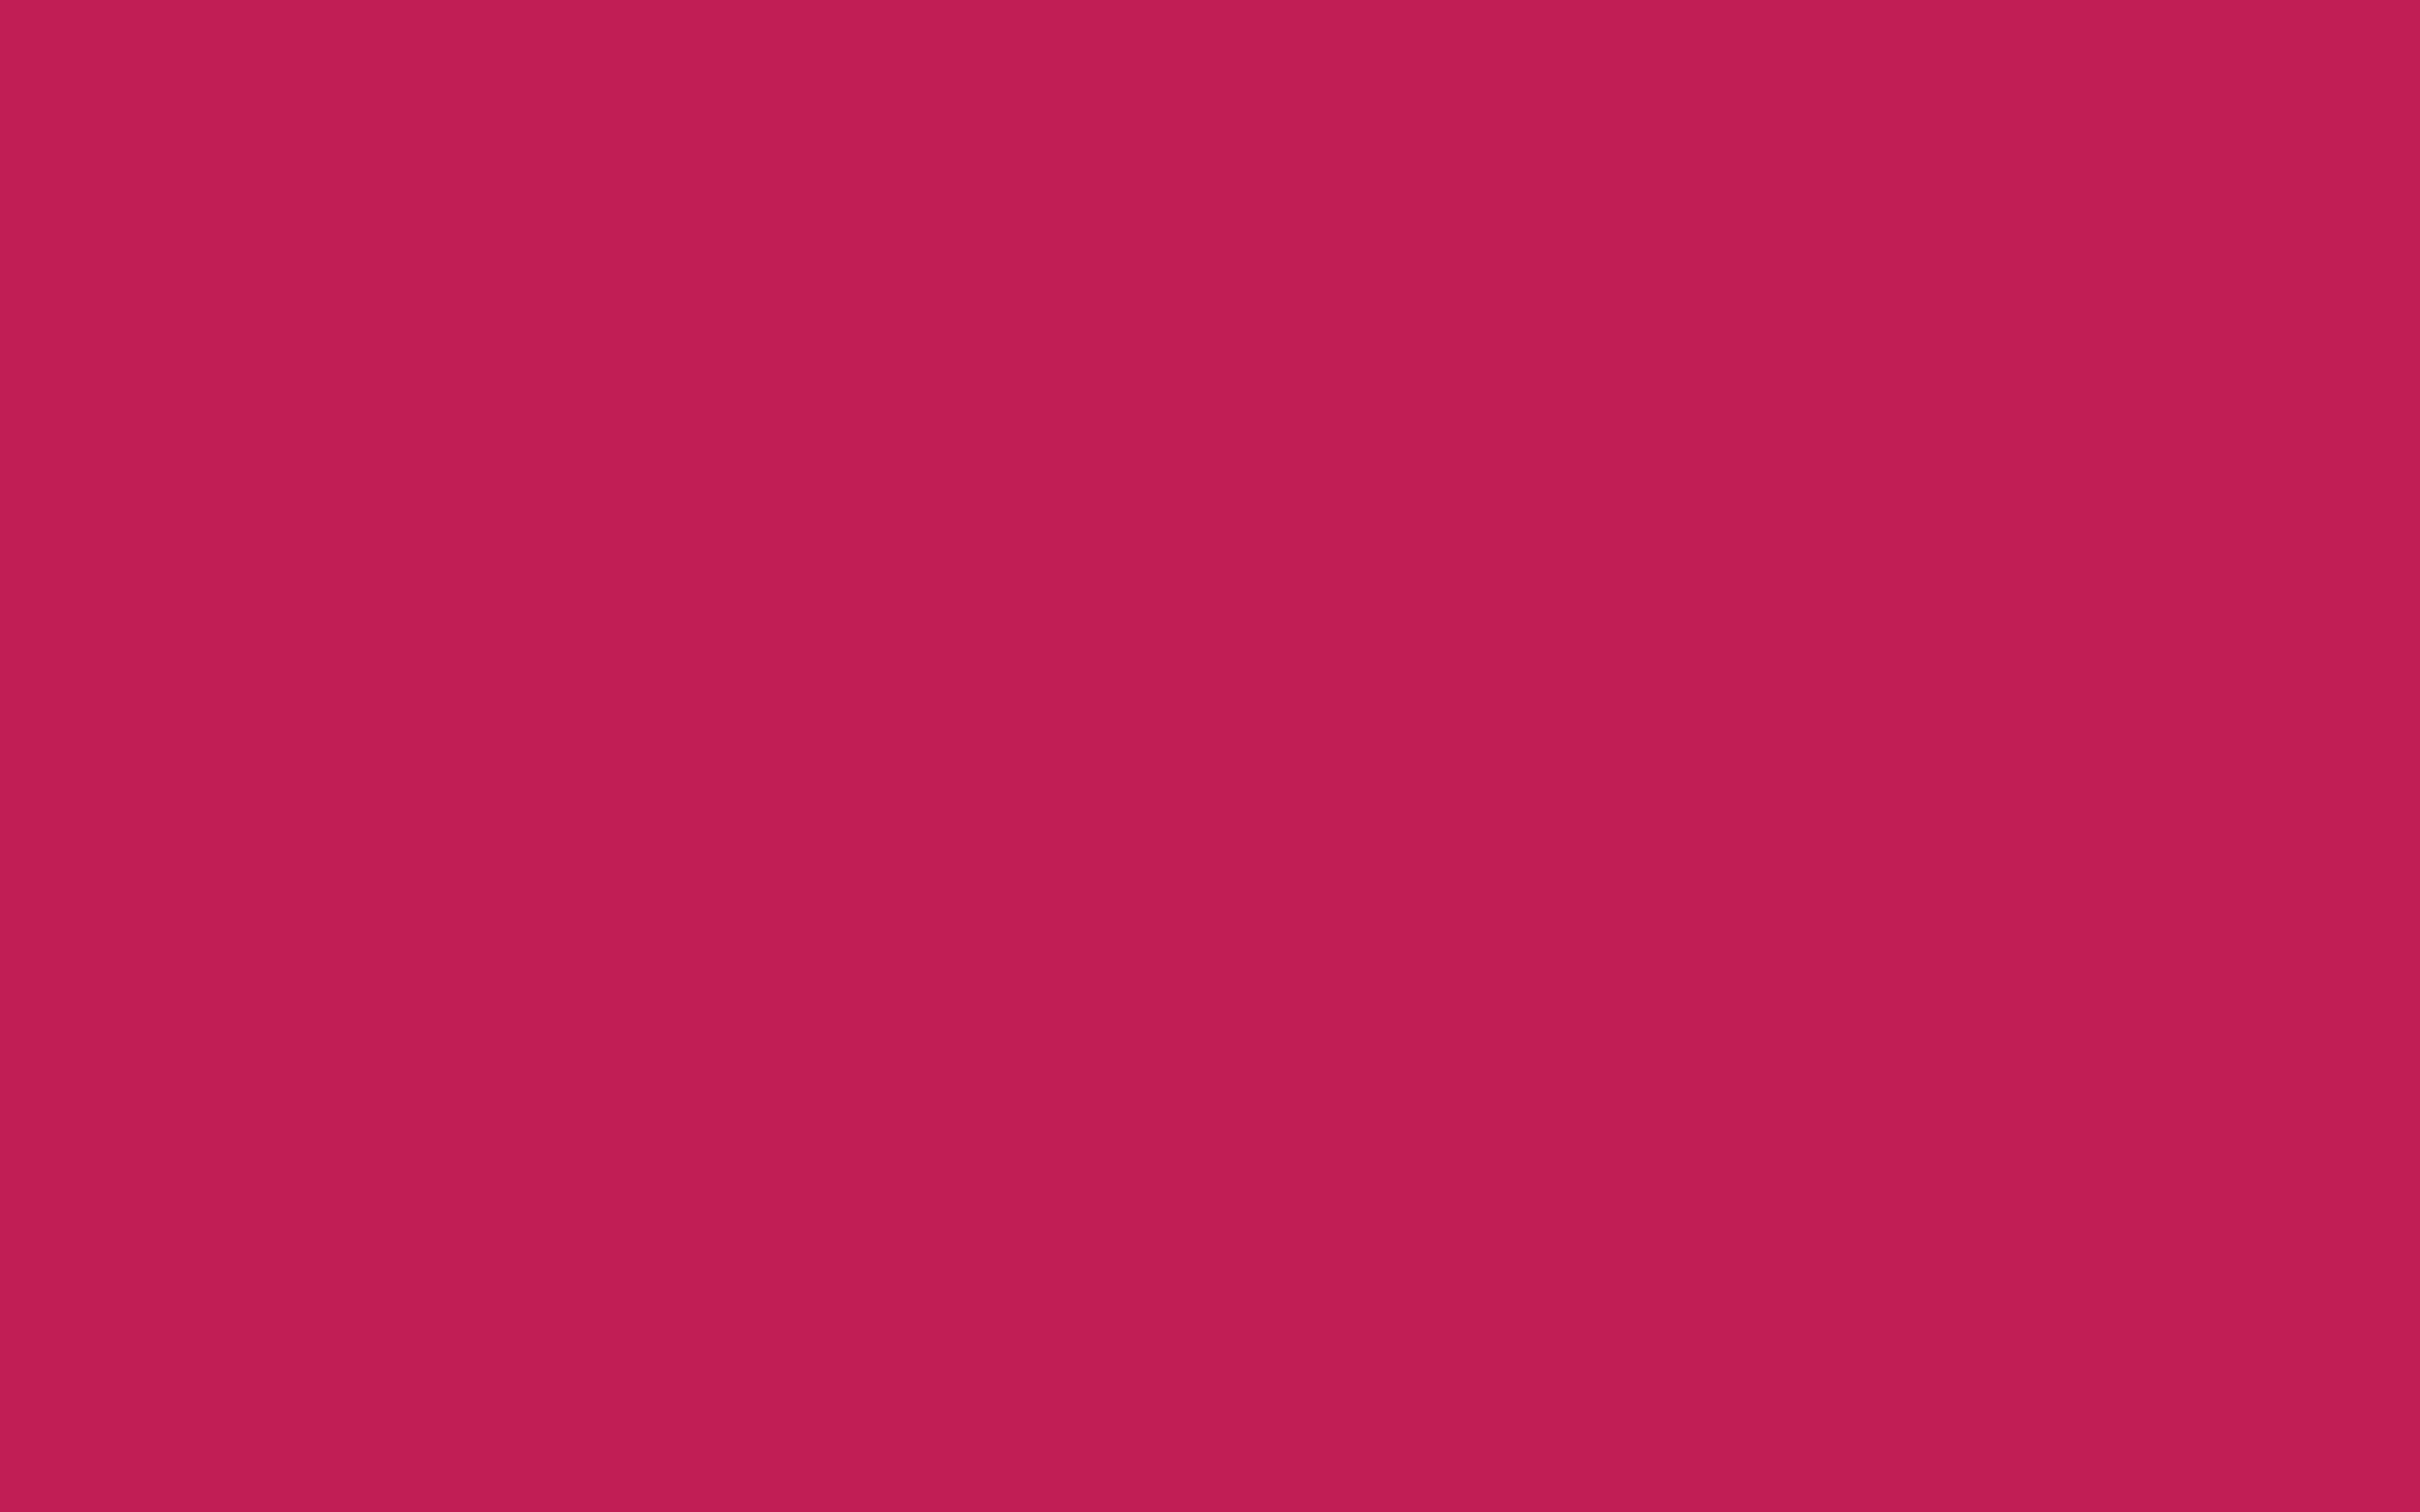 2880x1800 Rose Red Solid Color Background